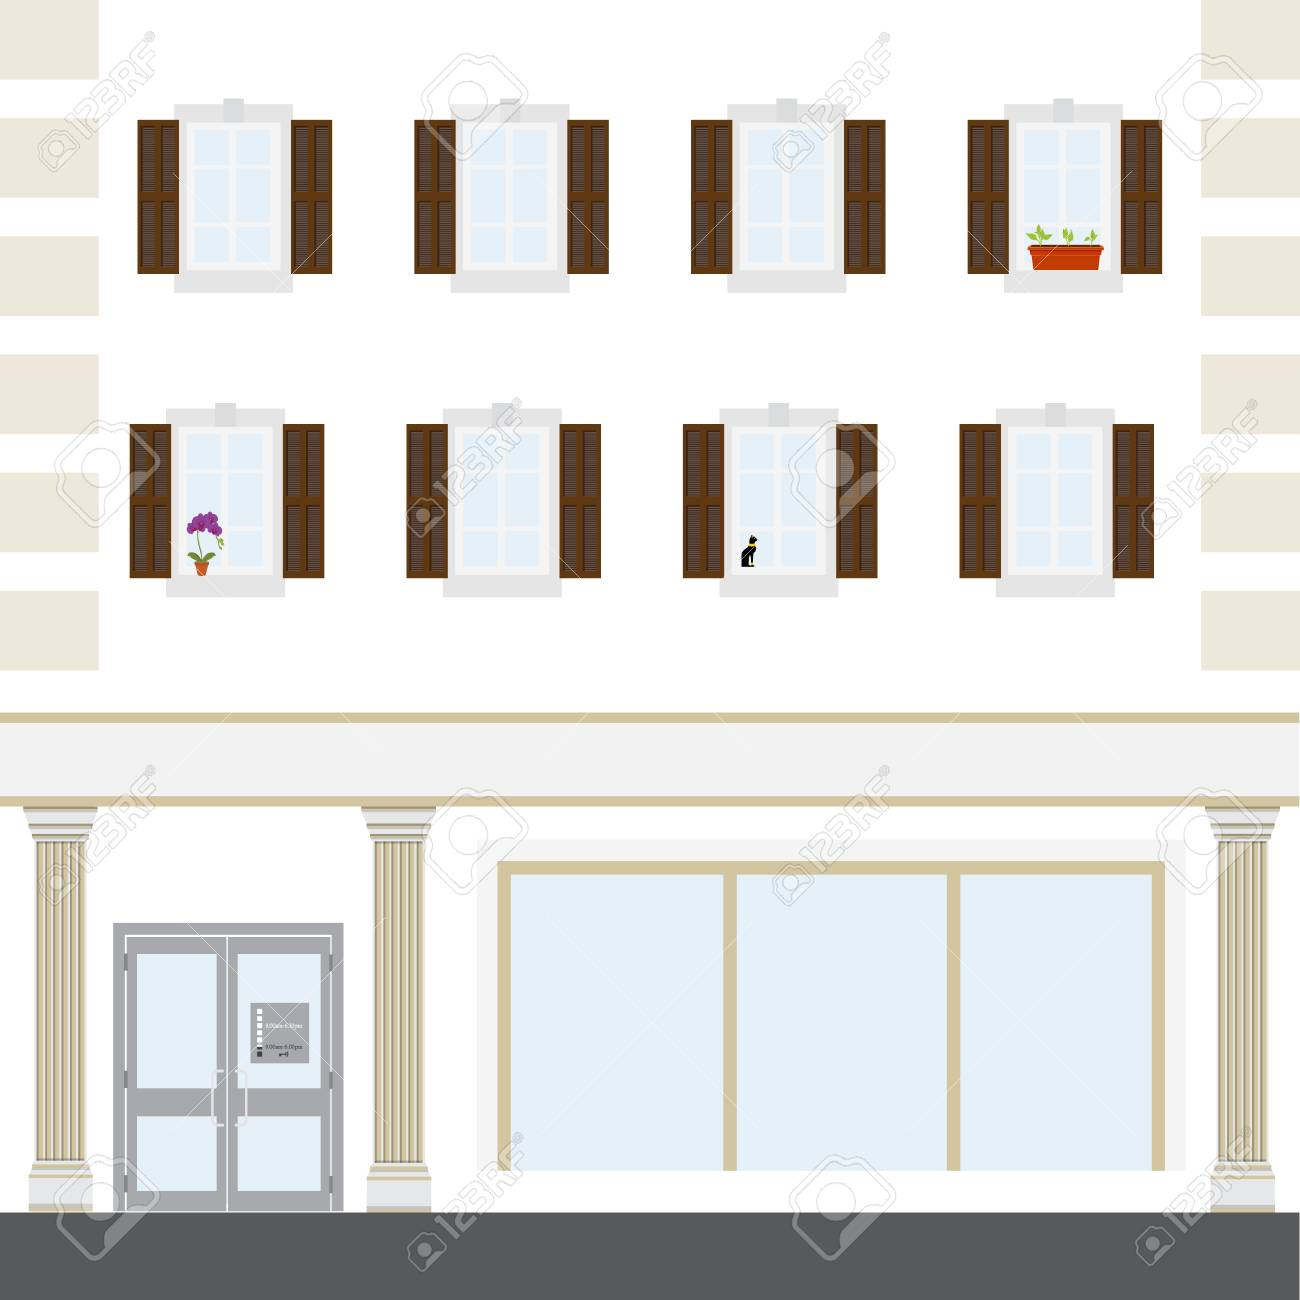 Raster illustration coffee shop facade building facade of a coffee foto de archivo raster illustration coffee shop facade building facade of a coffee shop store or cafe malvernweather Image collections